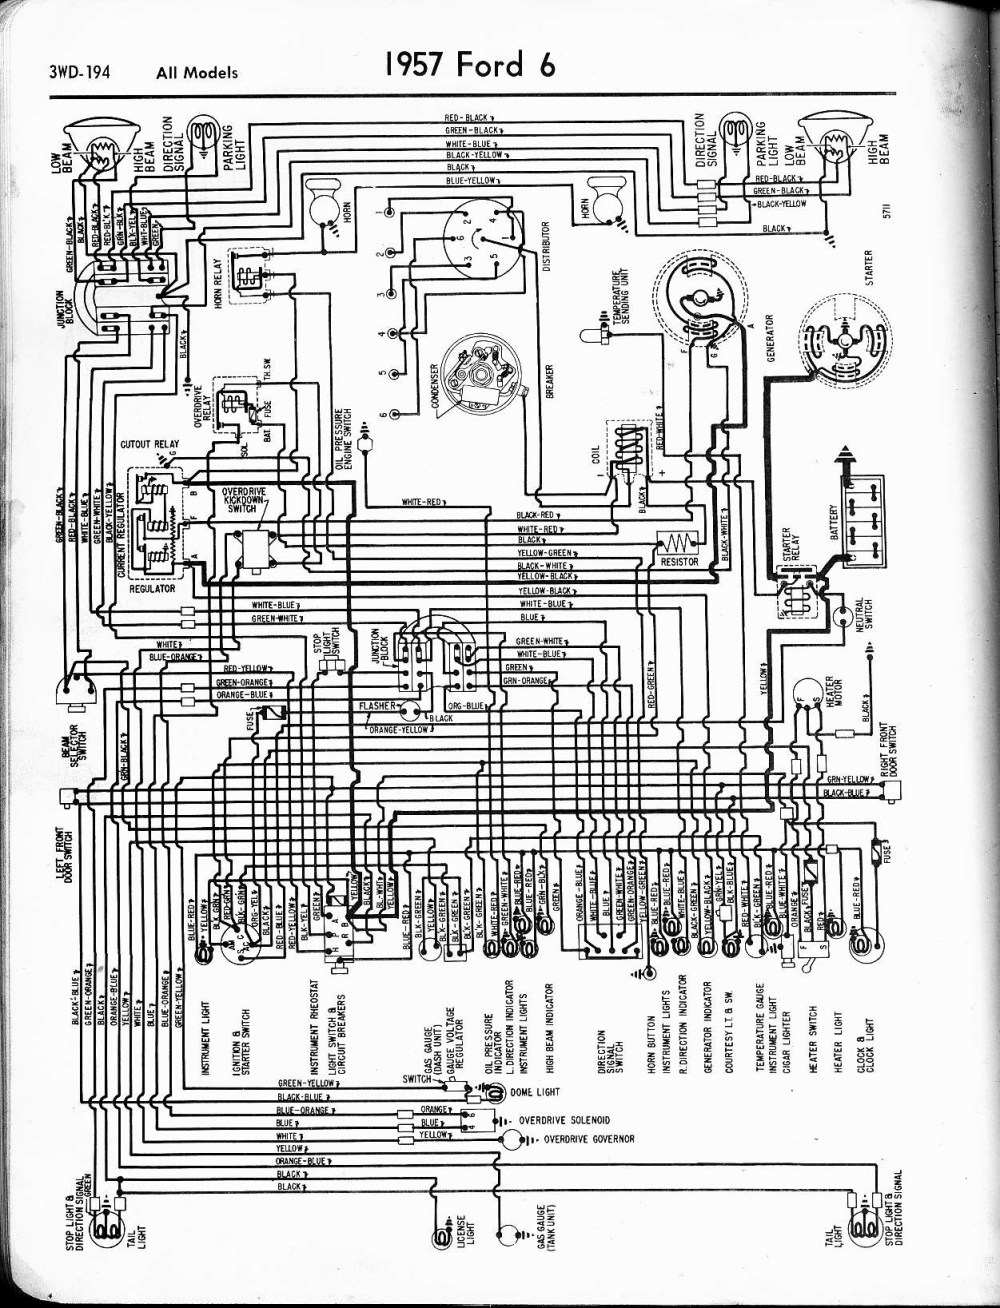 medium resolution of 1954 ford f100 wiring diagram likewise 1965 ford galaxie wiring rh bsmdot co ford mirror wiring